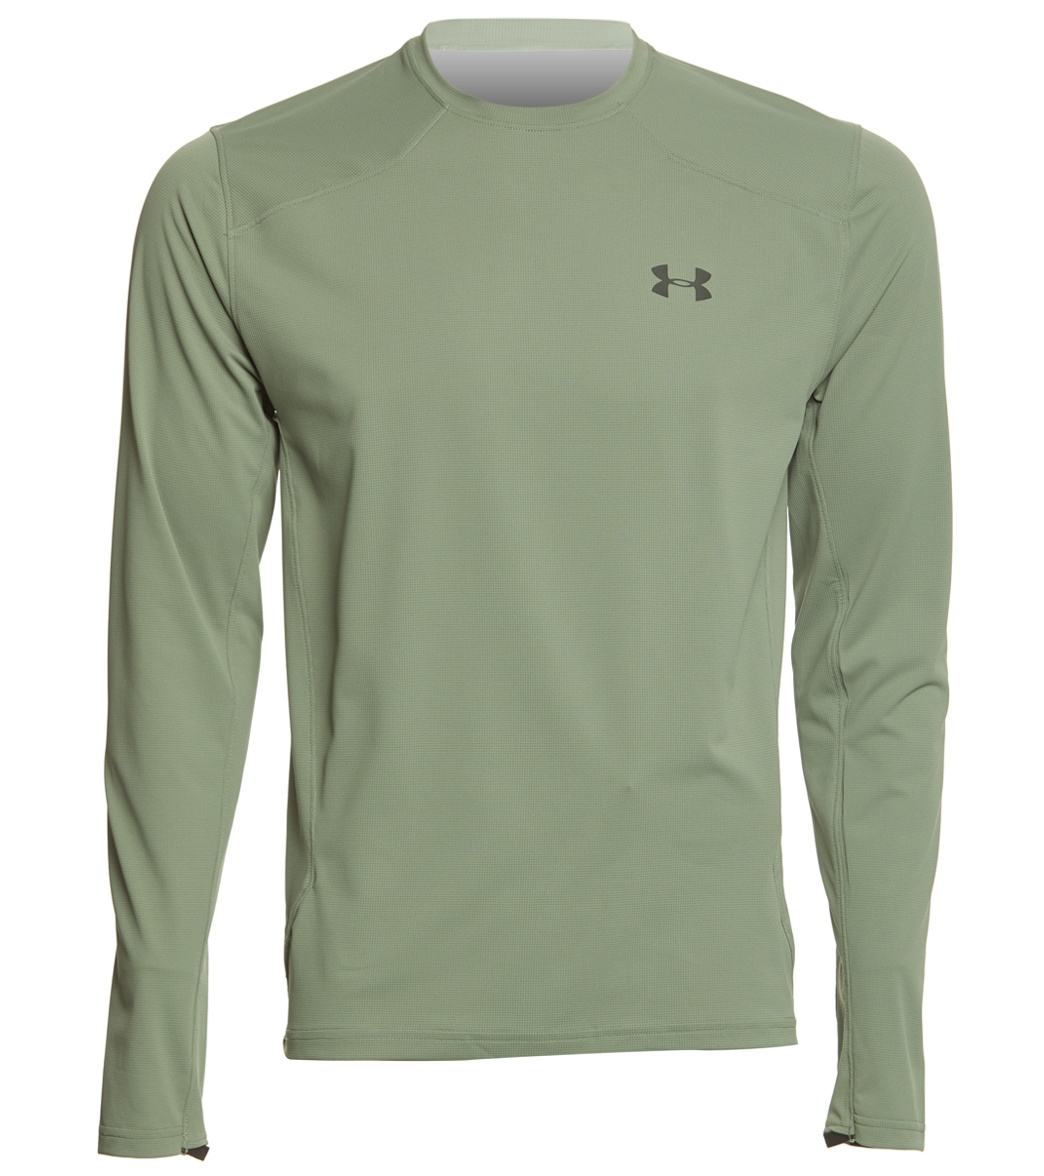 20b7eee17 Under Armour Men's UA Sunblock Long Sleeve Shirt at SwimOutlet.com - Free  Shipping